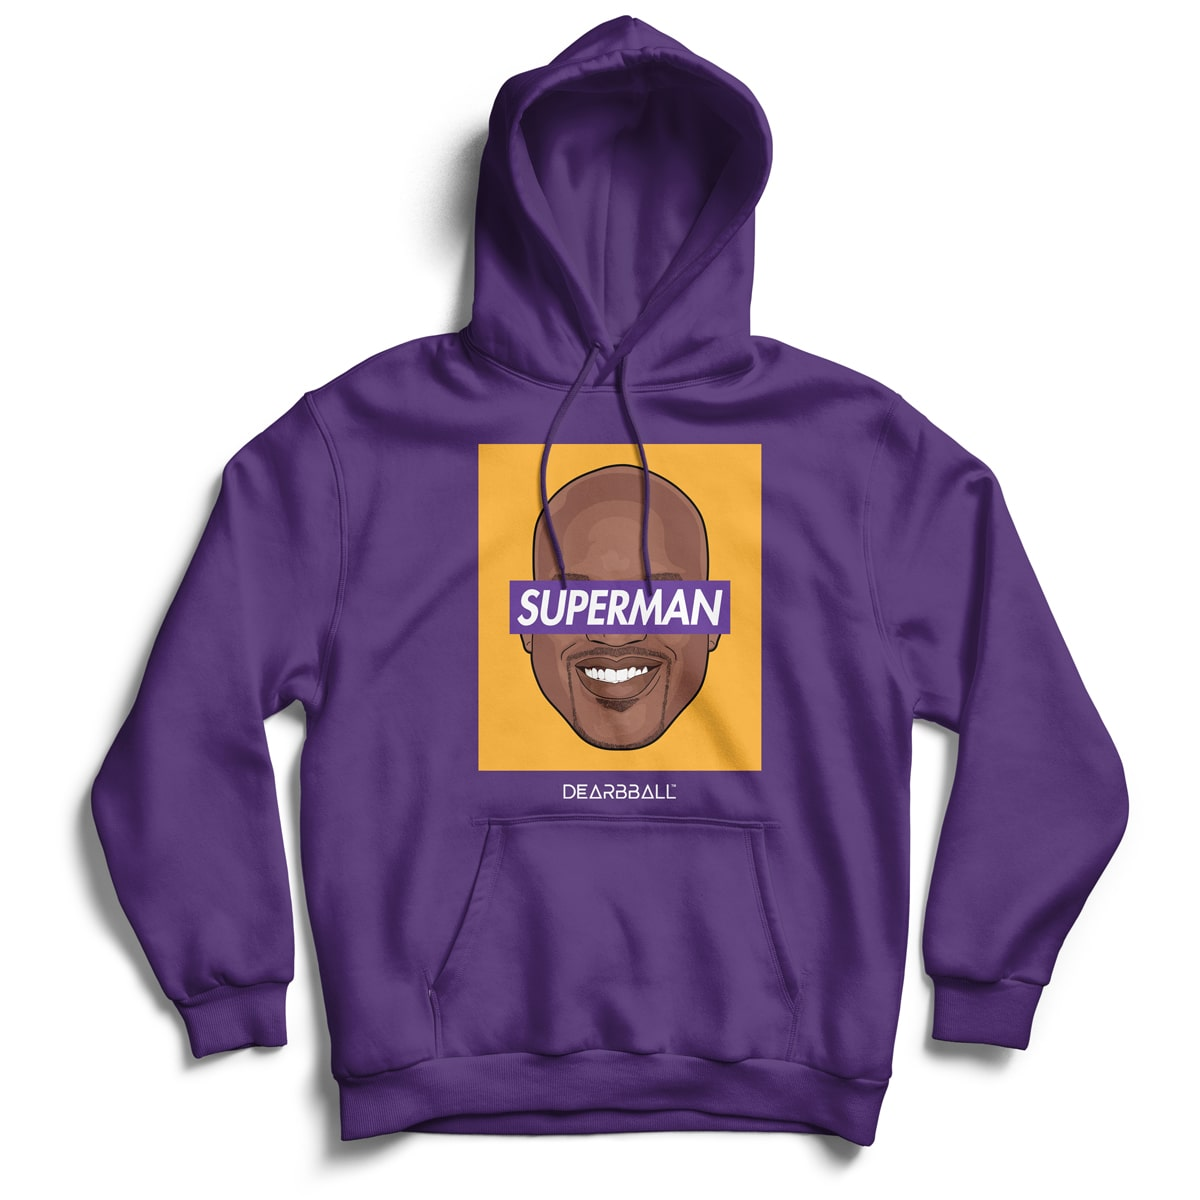 Shaquille_O_Neal_Hoodie_Superman_LA_Dearbball_Purple